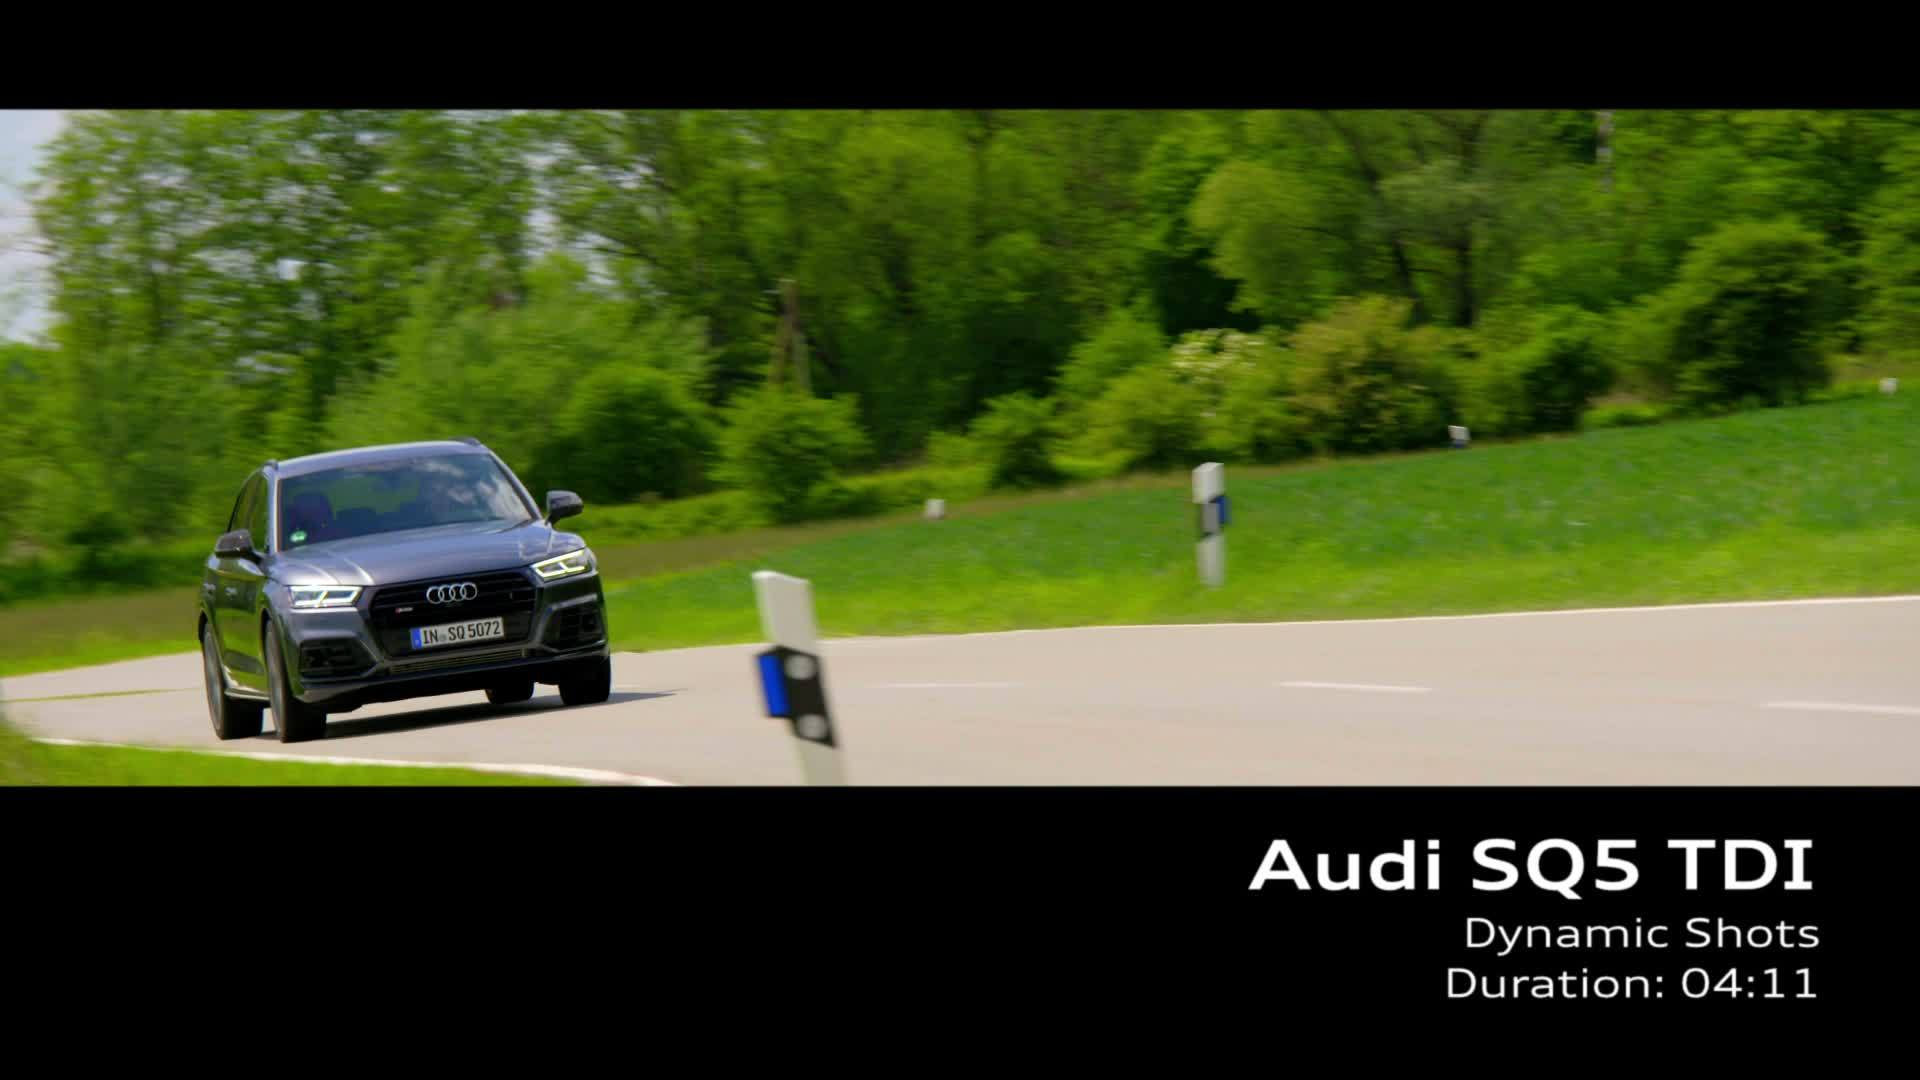 Audi SQ5 TDI (Footage)